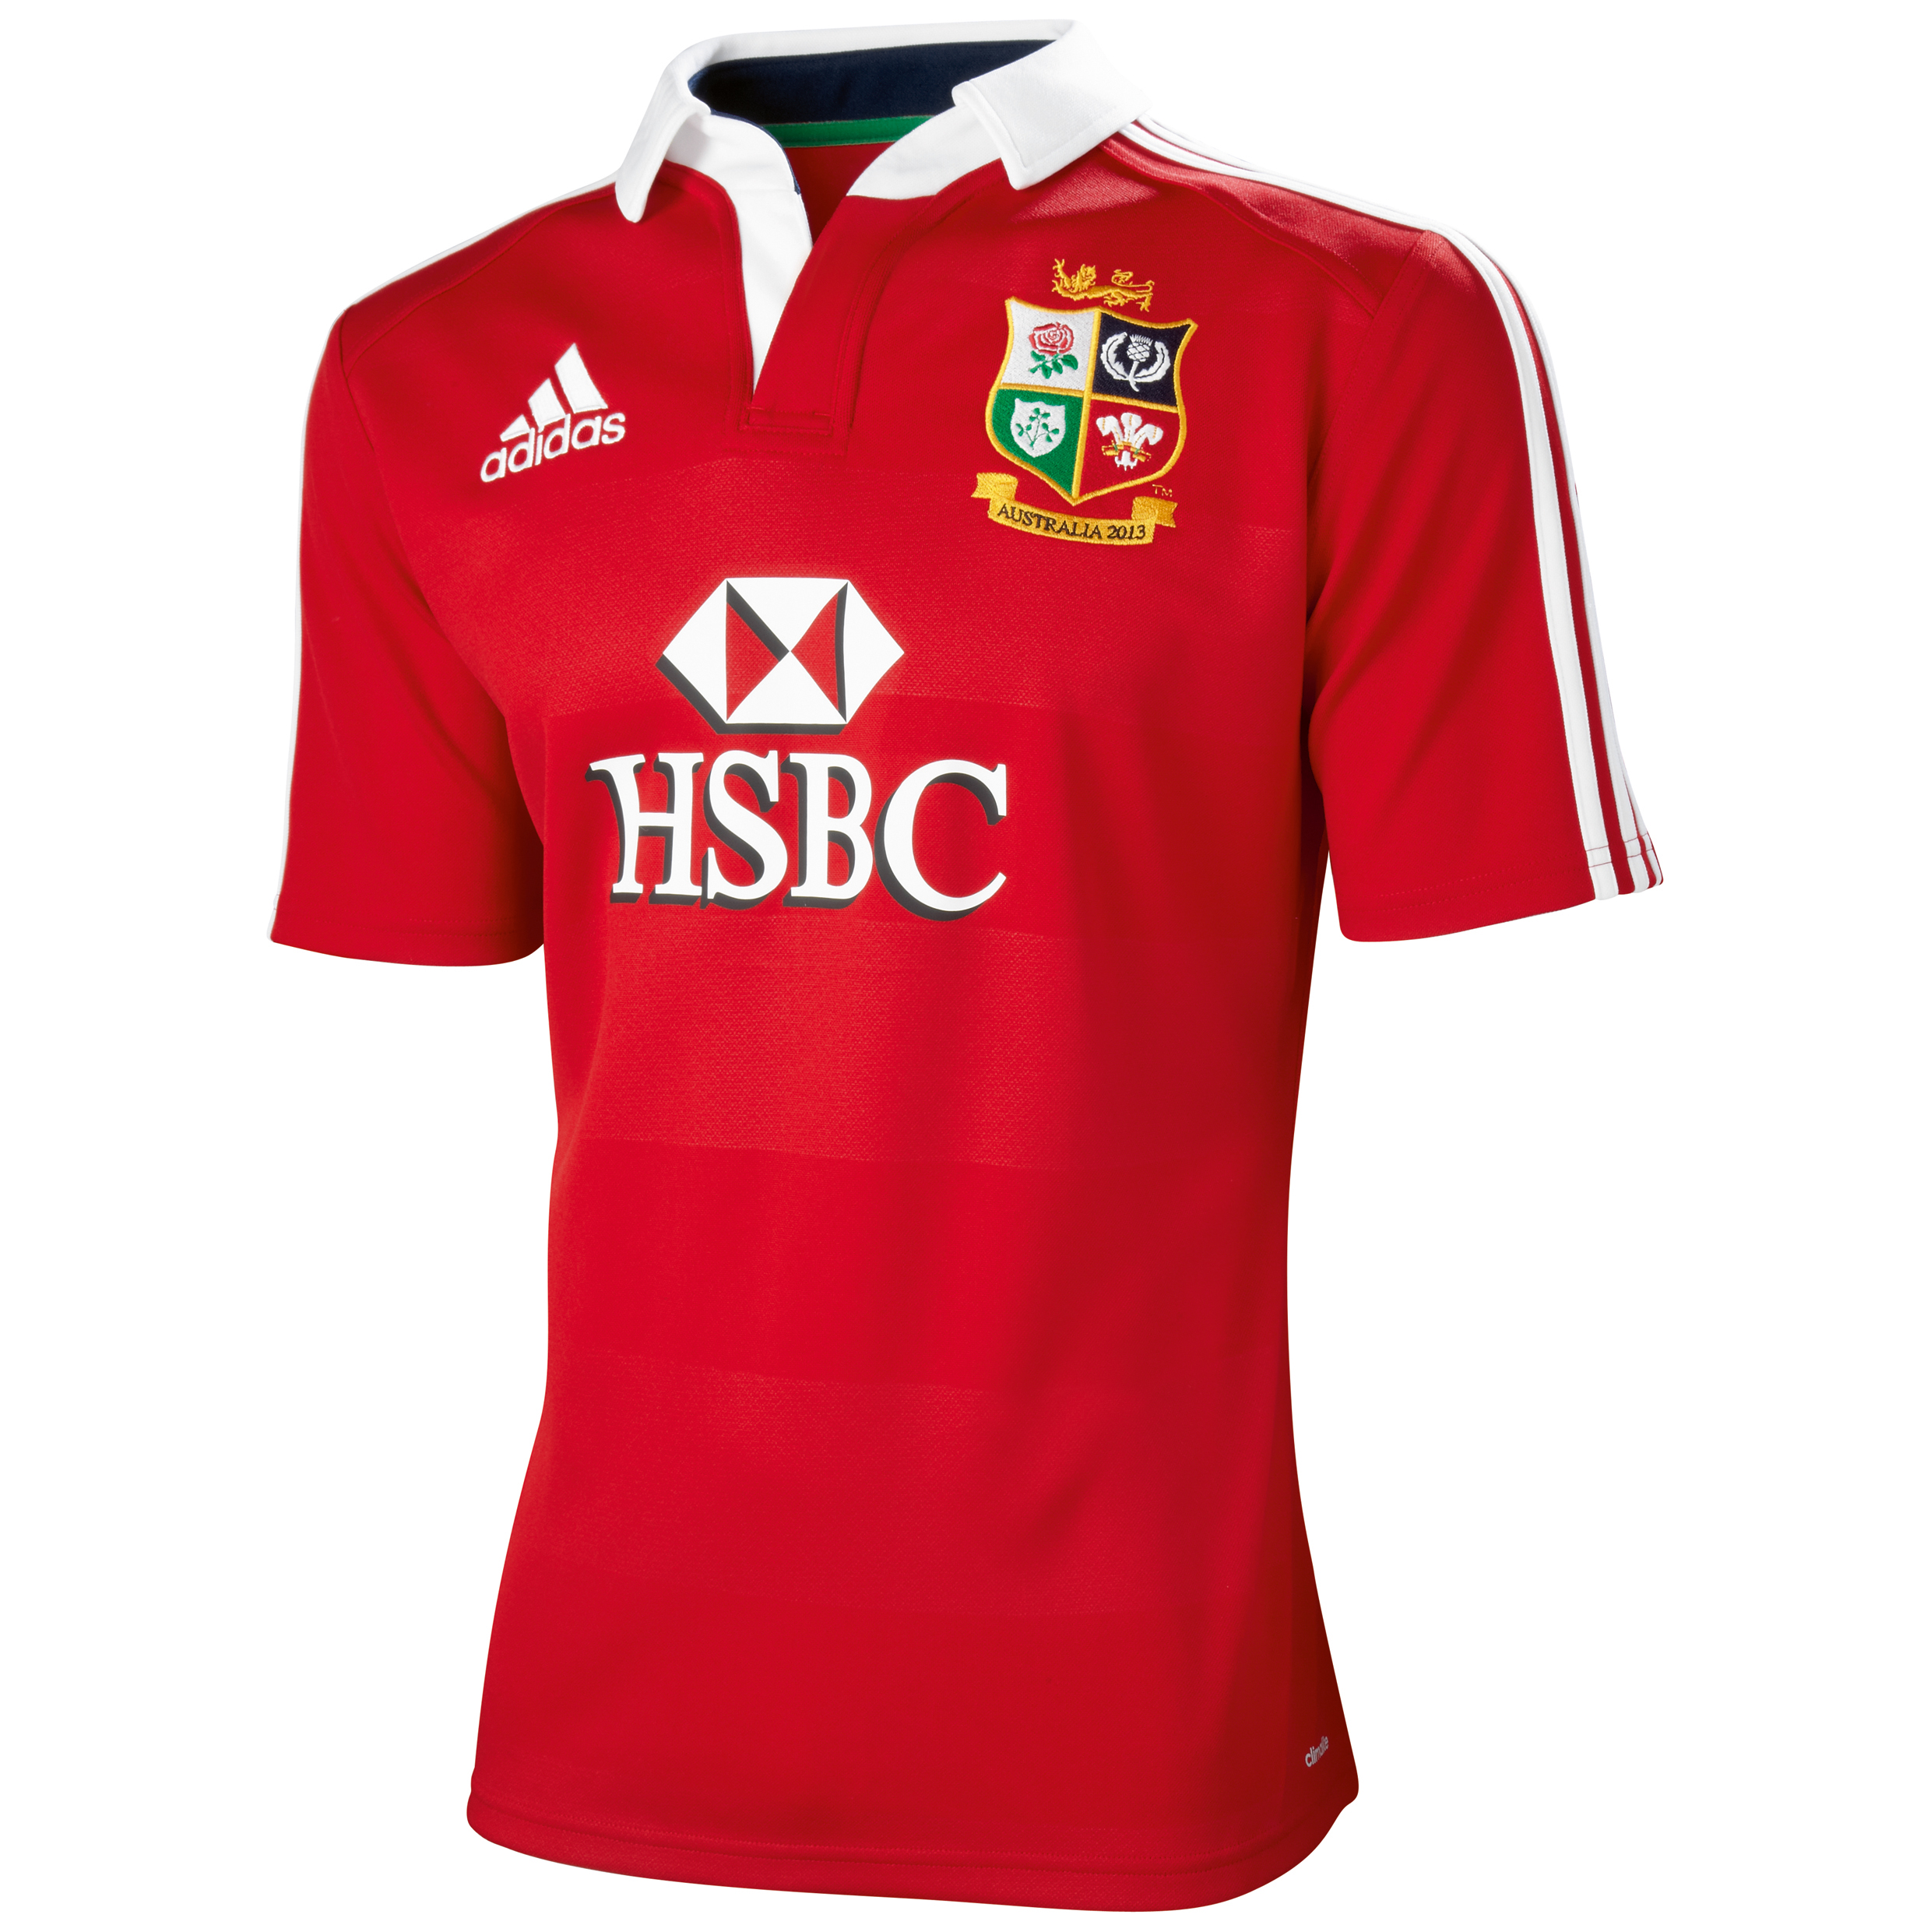 adidas British and Irish Lions Home Shirt 2013